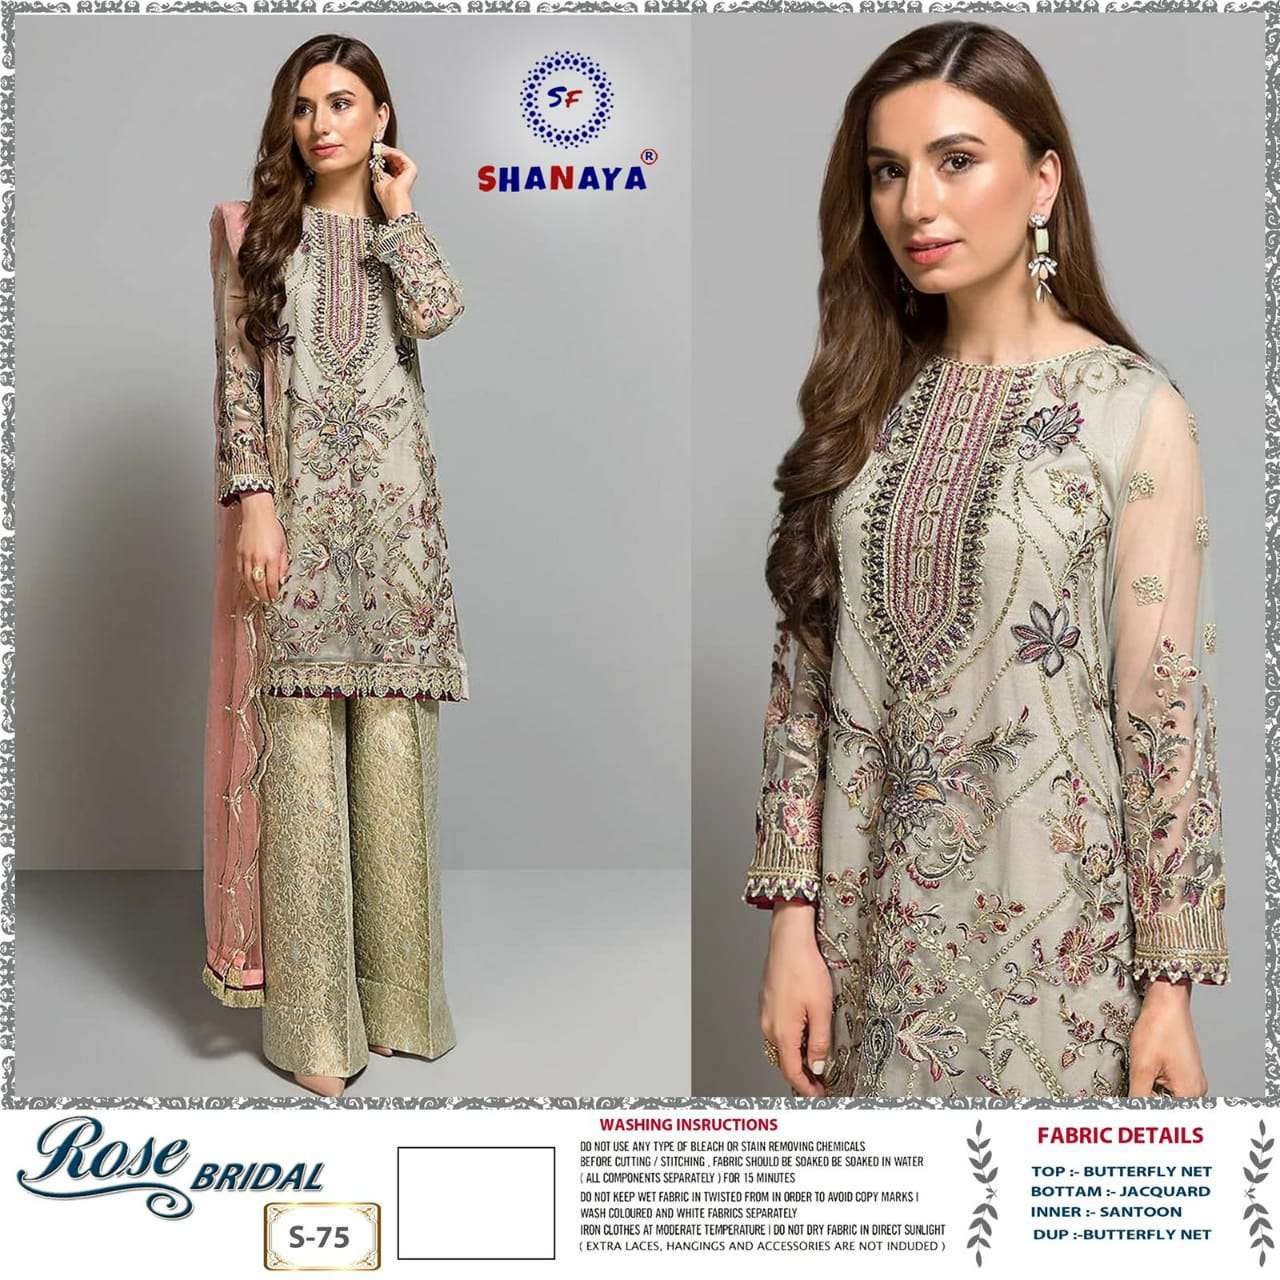 SHANAYA FASHION ROSE BRIDAL S-75 DESIGNER HEAVY BUTTERFLY NET WITH HEAVY WORK AND DIAMOND PAKISTANI REPLICA SUITS IN SINGLES